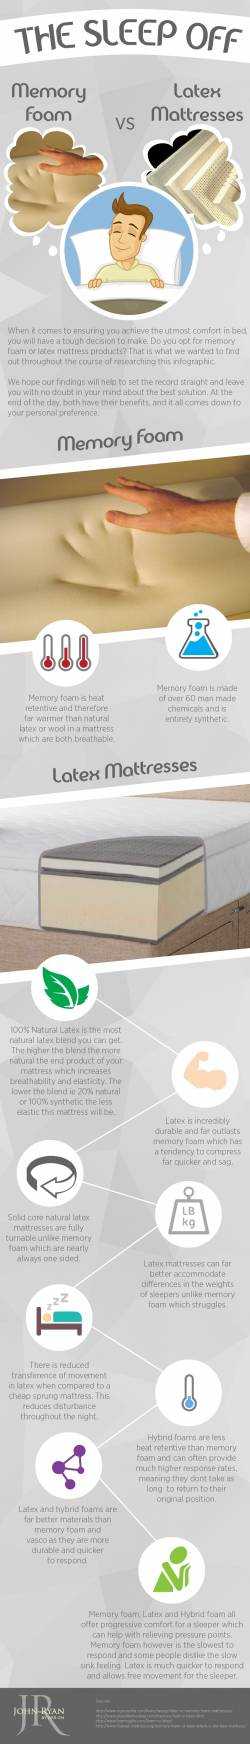 Memory foam vs latex matresses